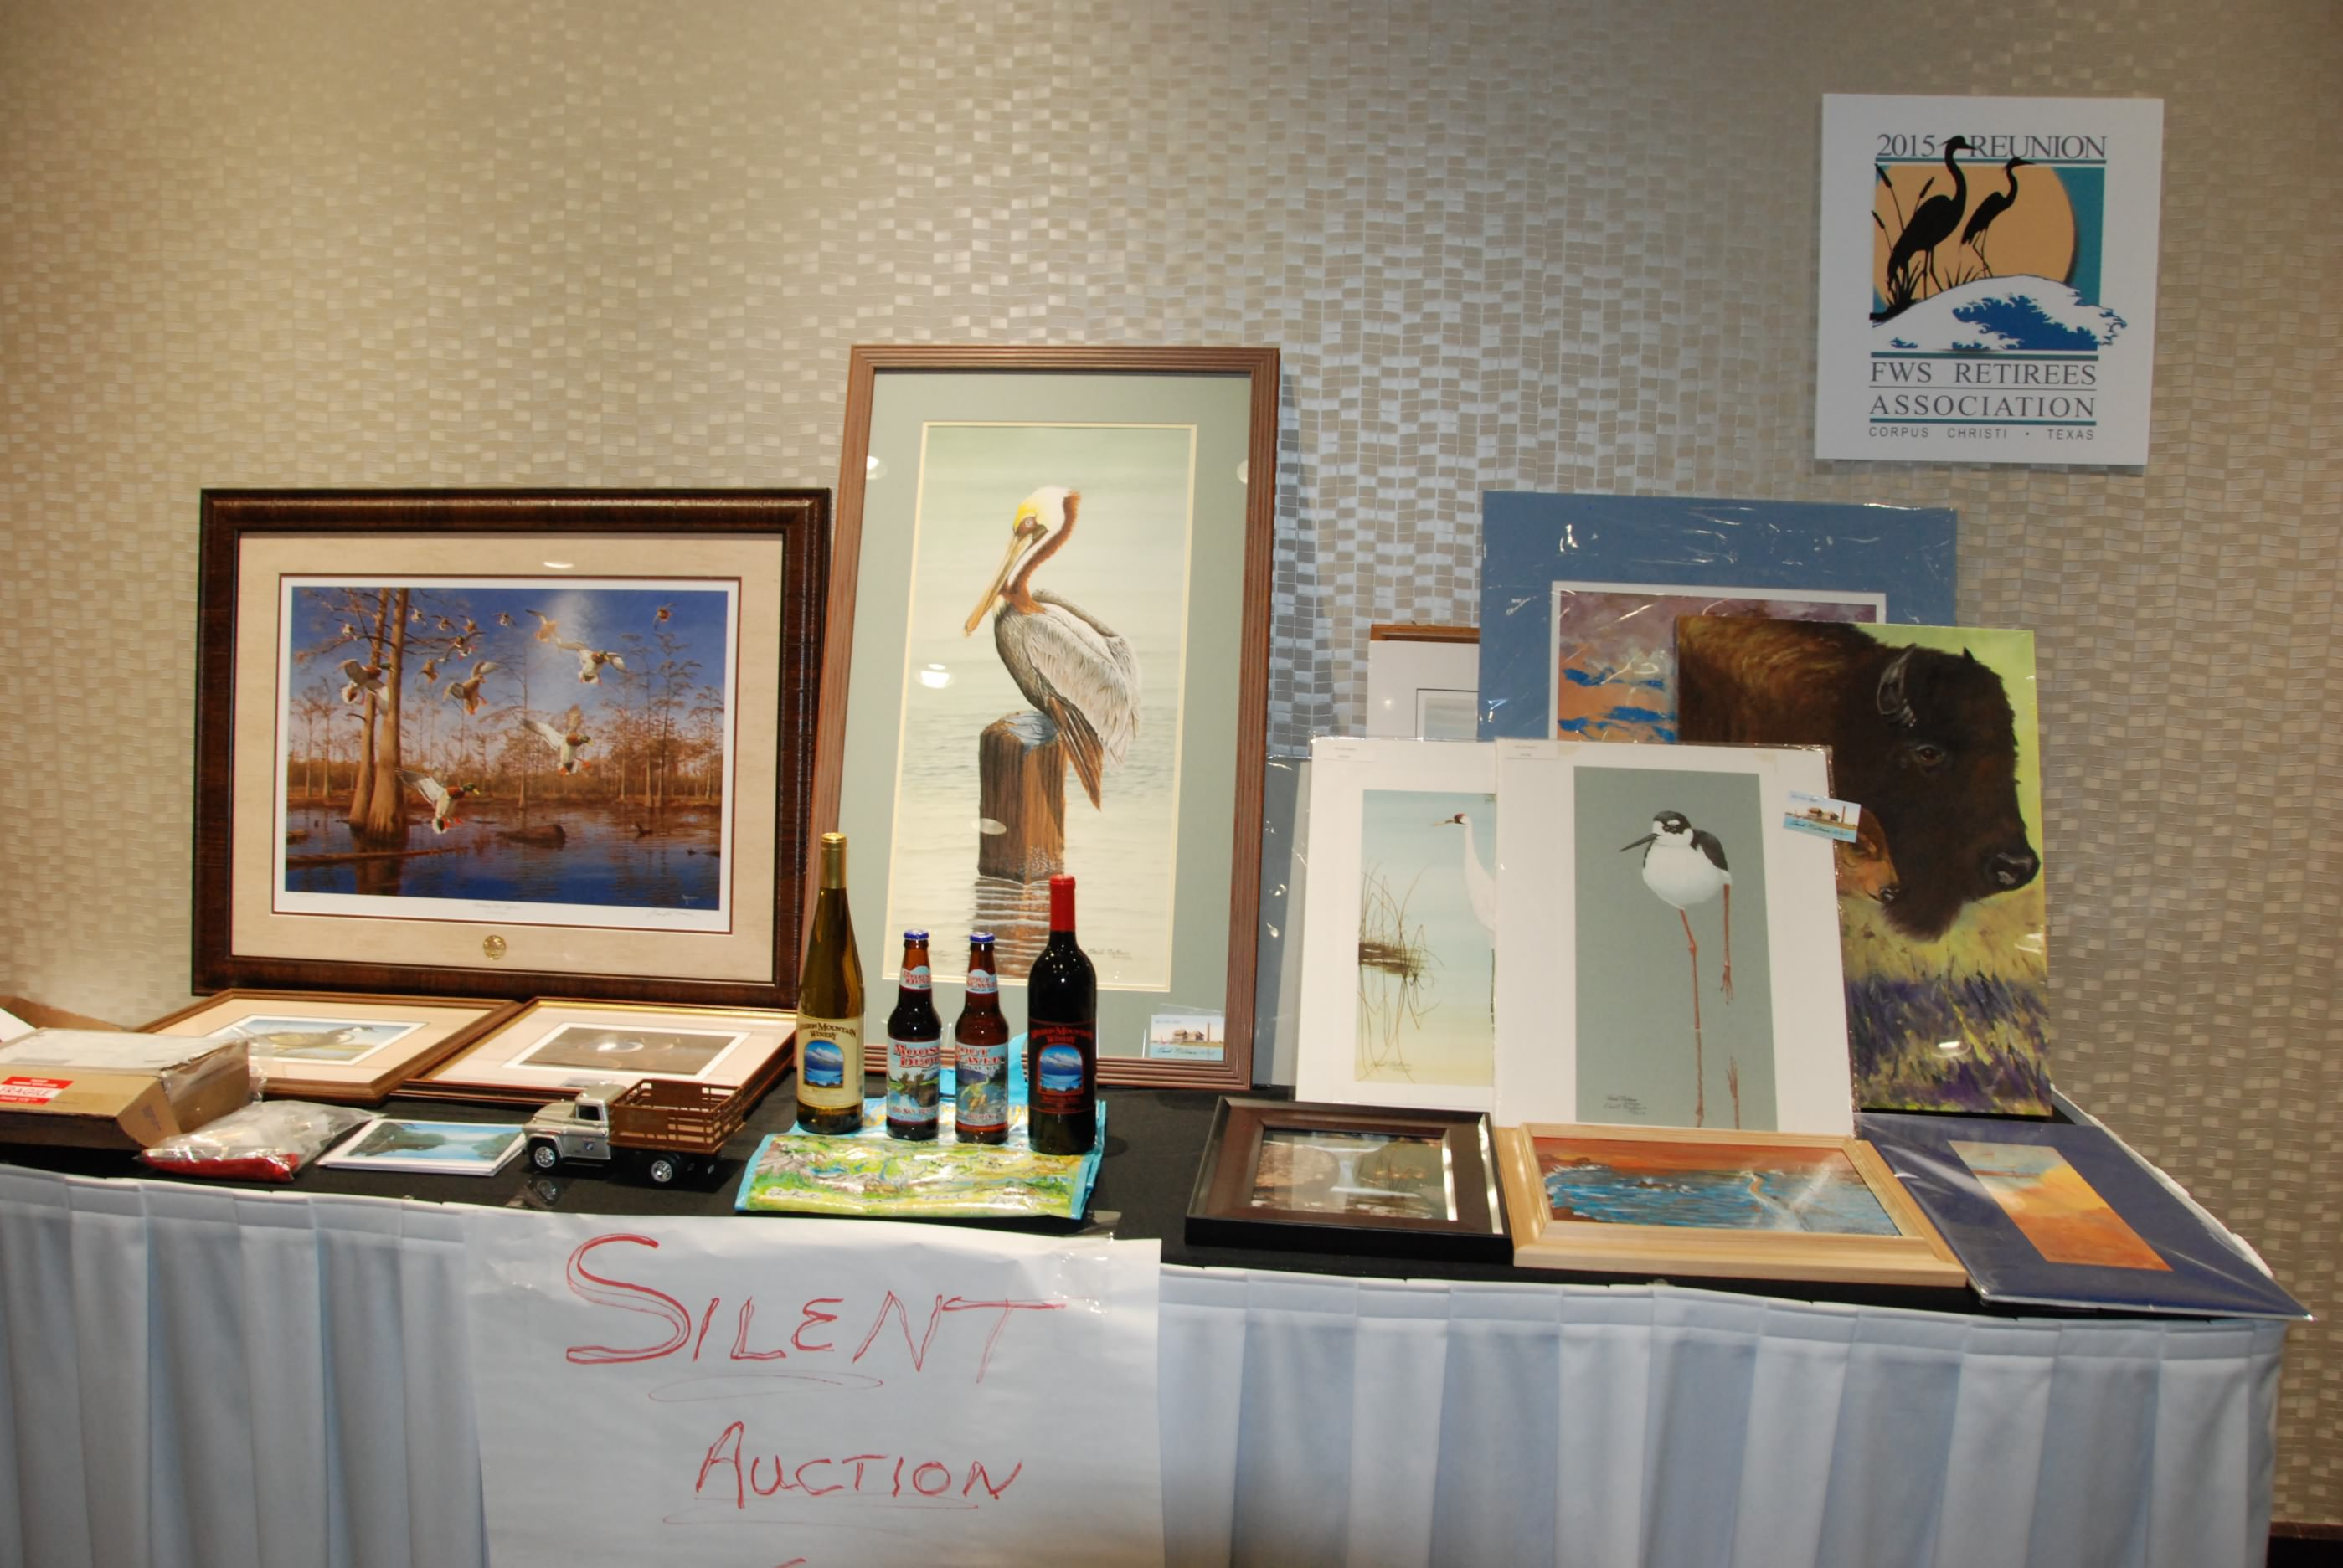 Some of the auction items